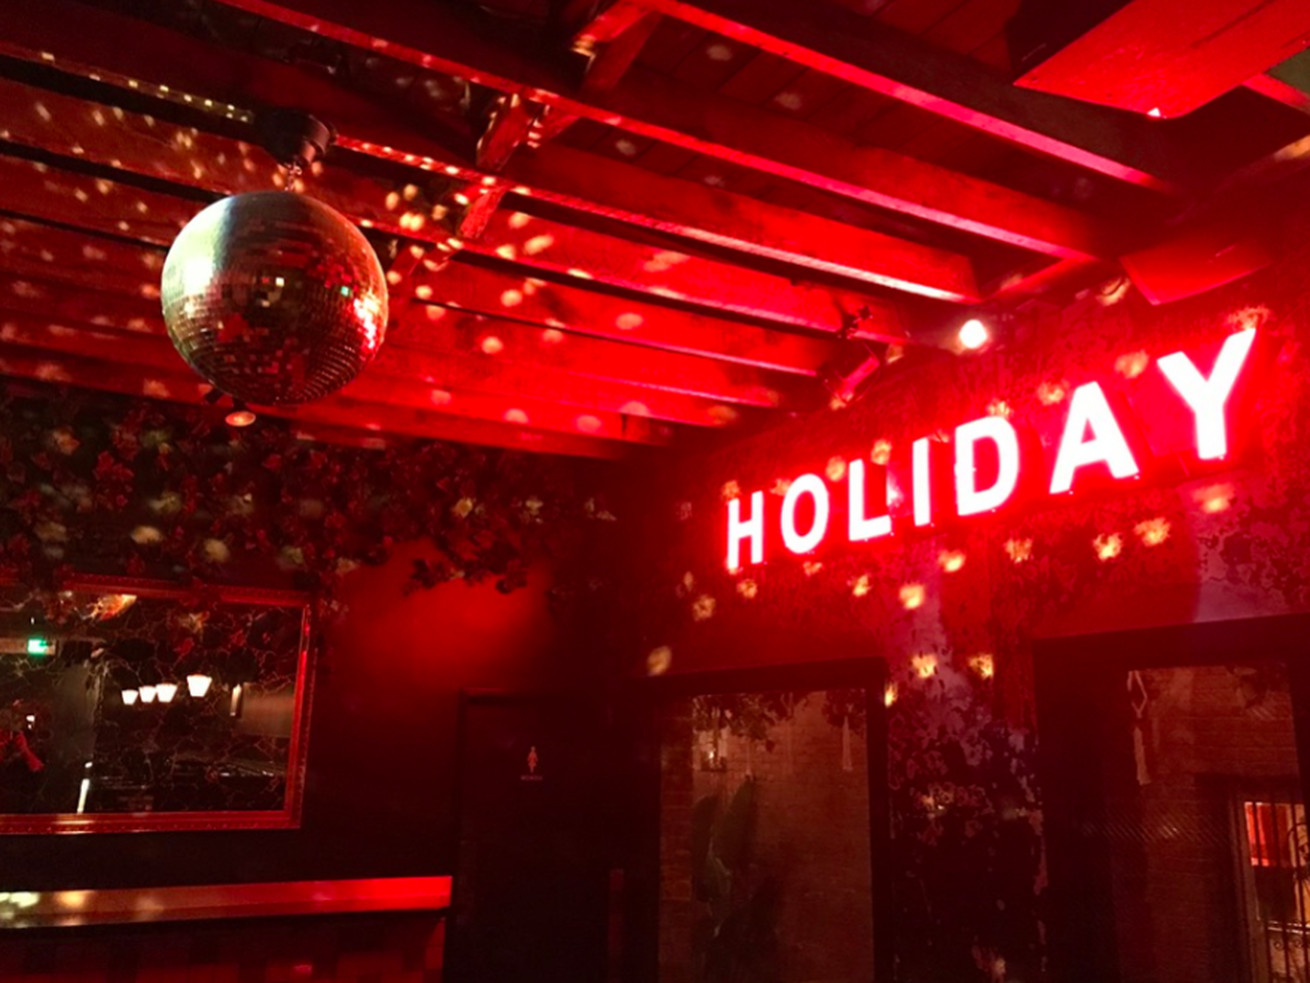 Holiday Bar, Boyle Heights' new watering hole, hits all the right neighborhood notes